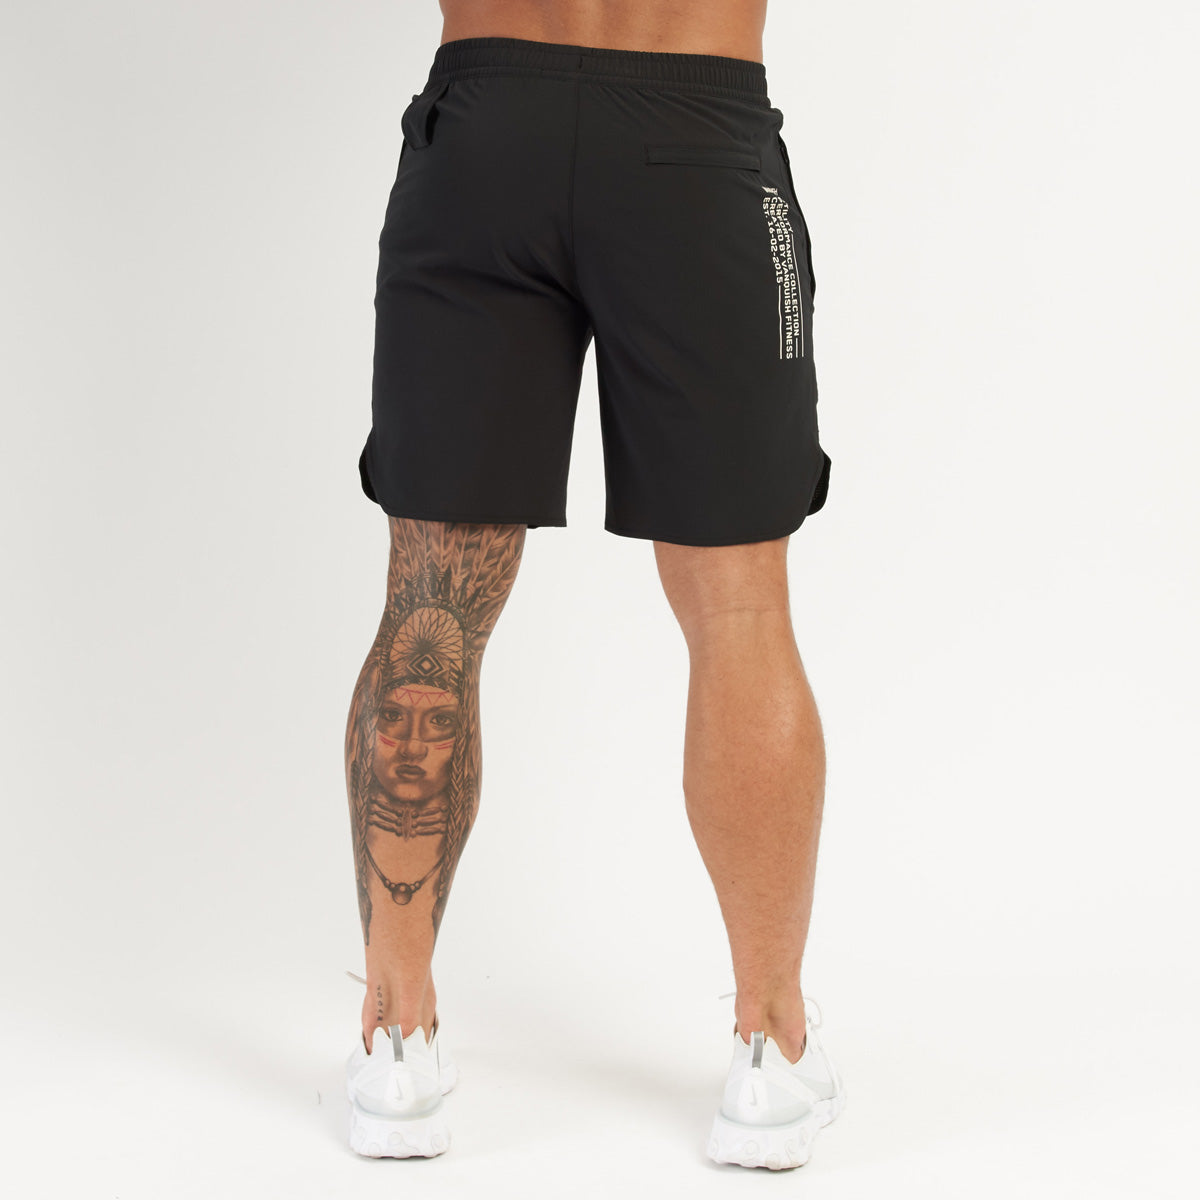 Vanquish Utility Men's Black 8 Inch Shorts